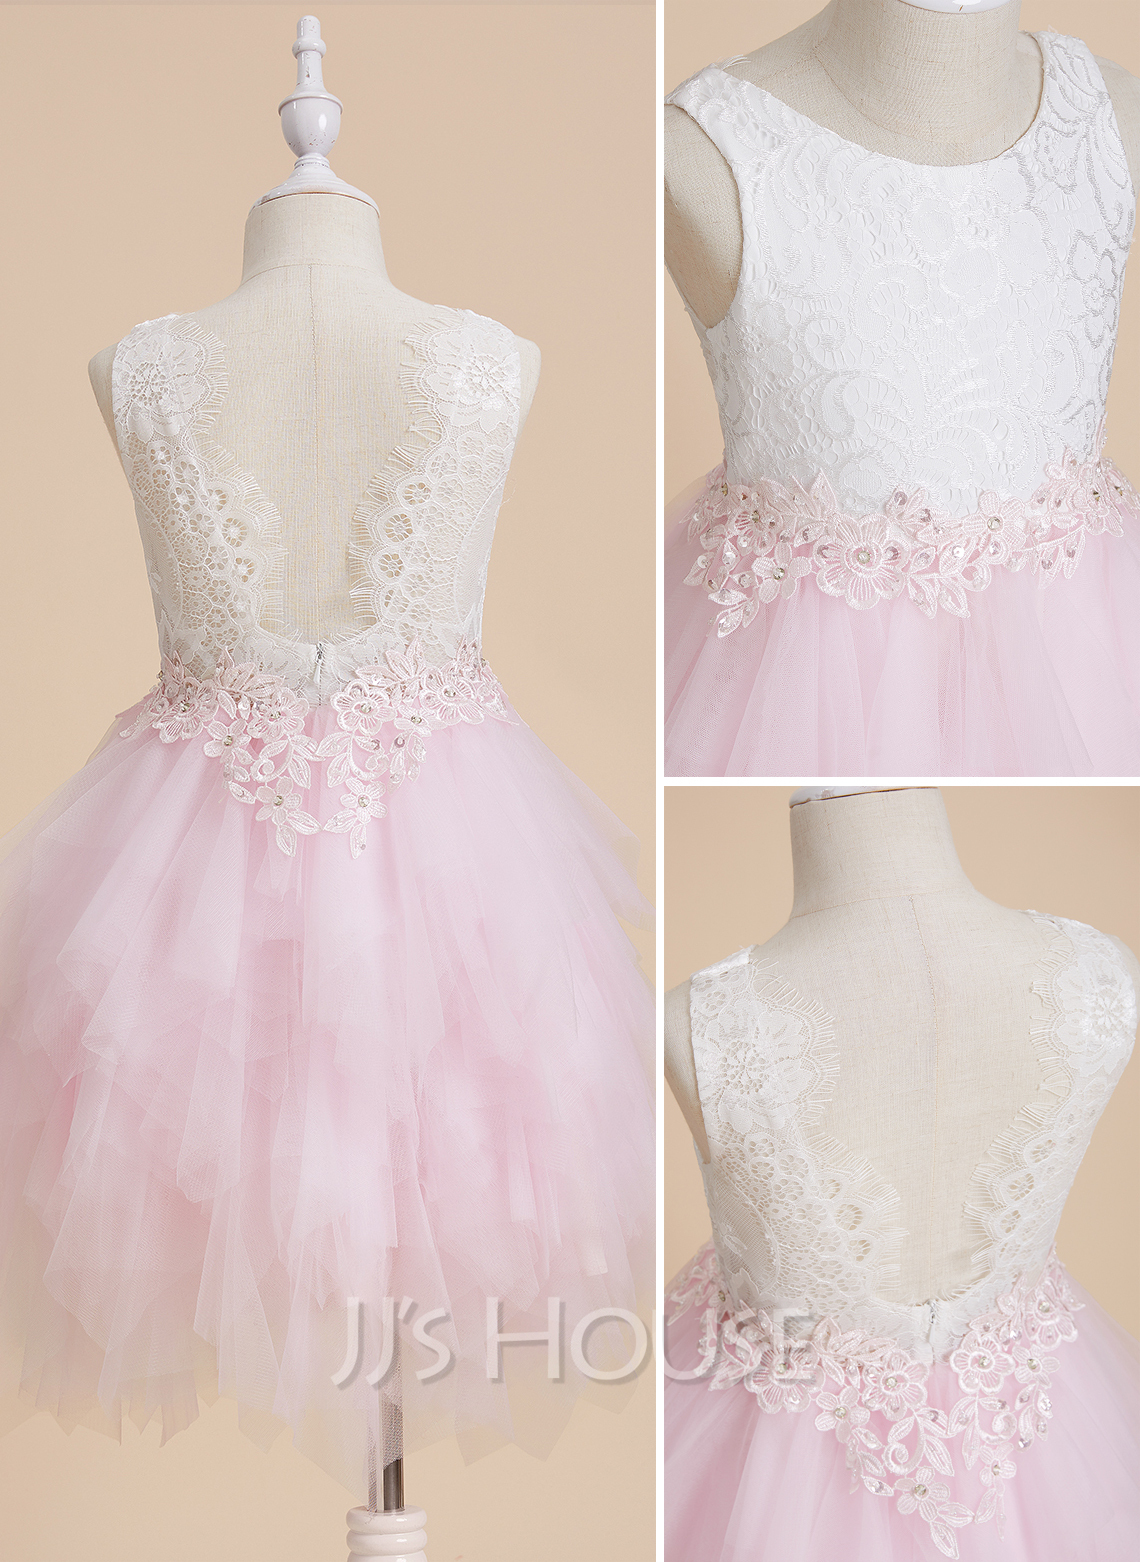 Ball-Gown/Princess Knee-length Flower Girl Dress - Tulle/Lace Sleeveless Scoop Neck With Lace/Beading/Sequins/V Back